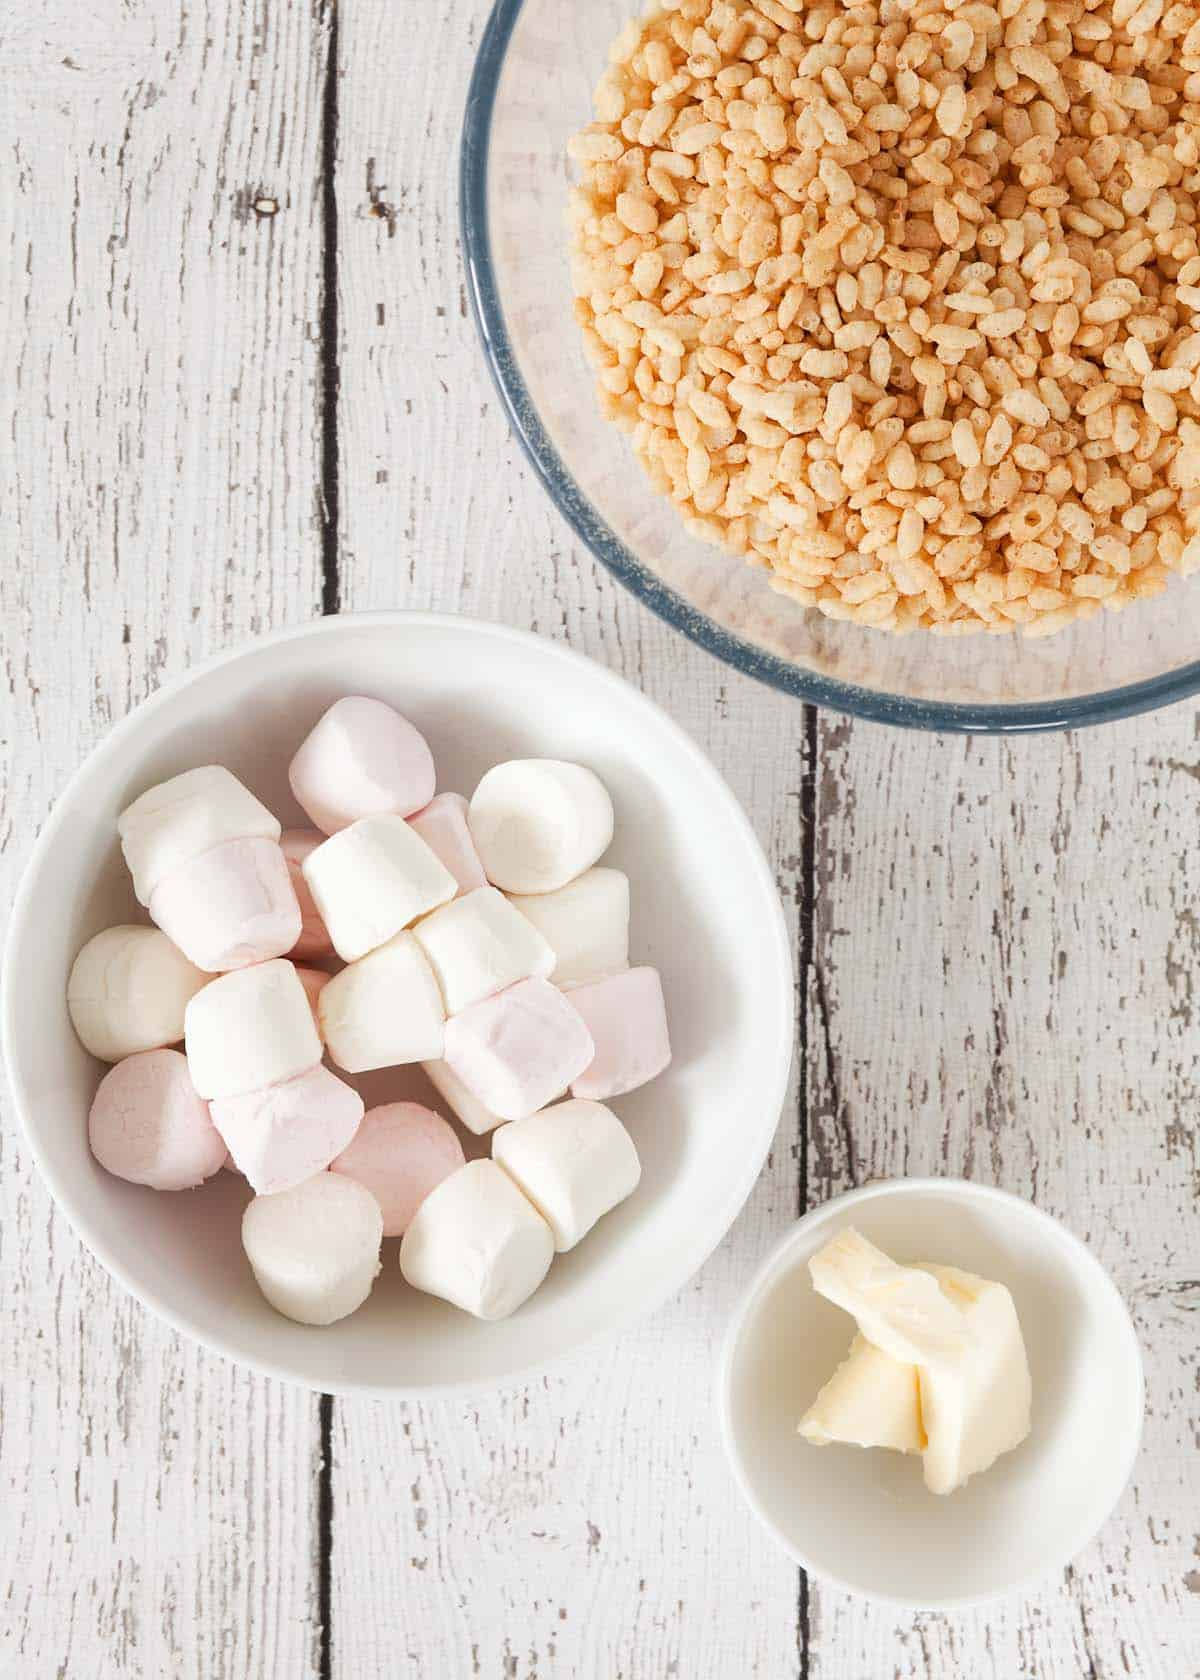 ingredients in bowls - marshmallows, rice krispies & butter